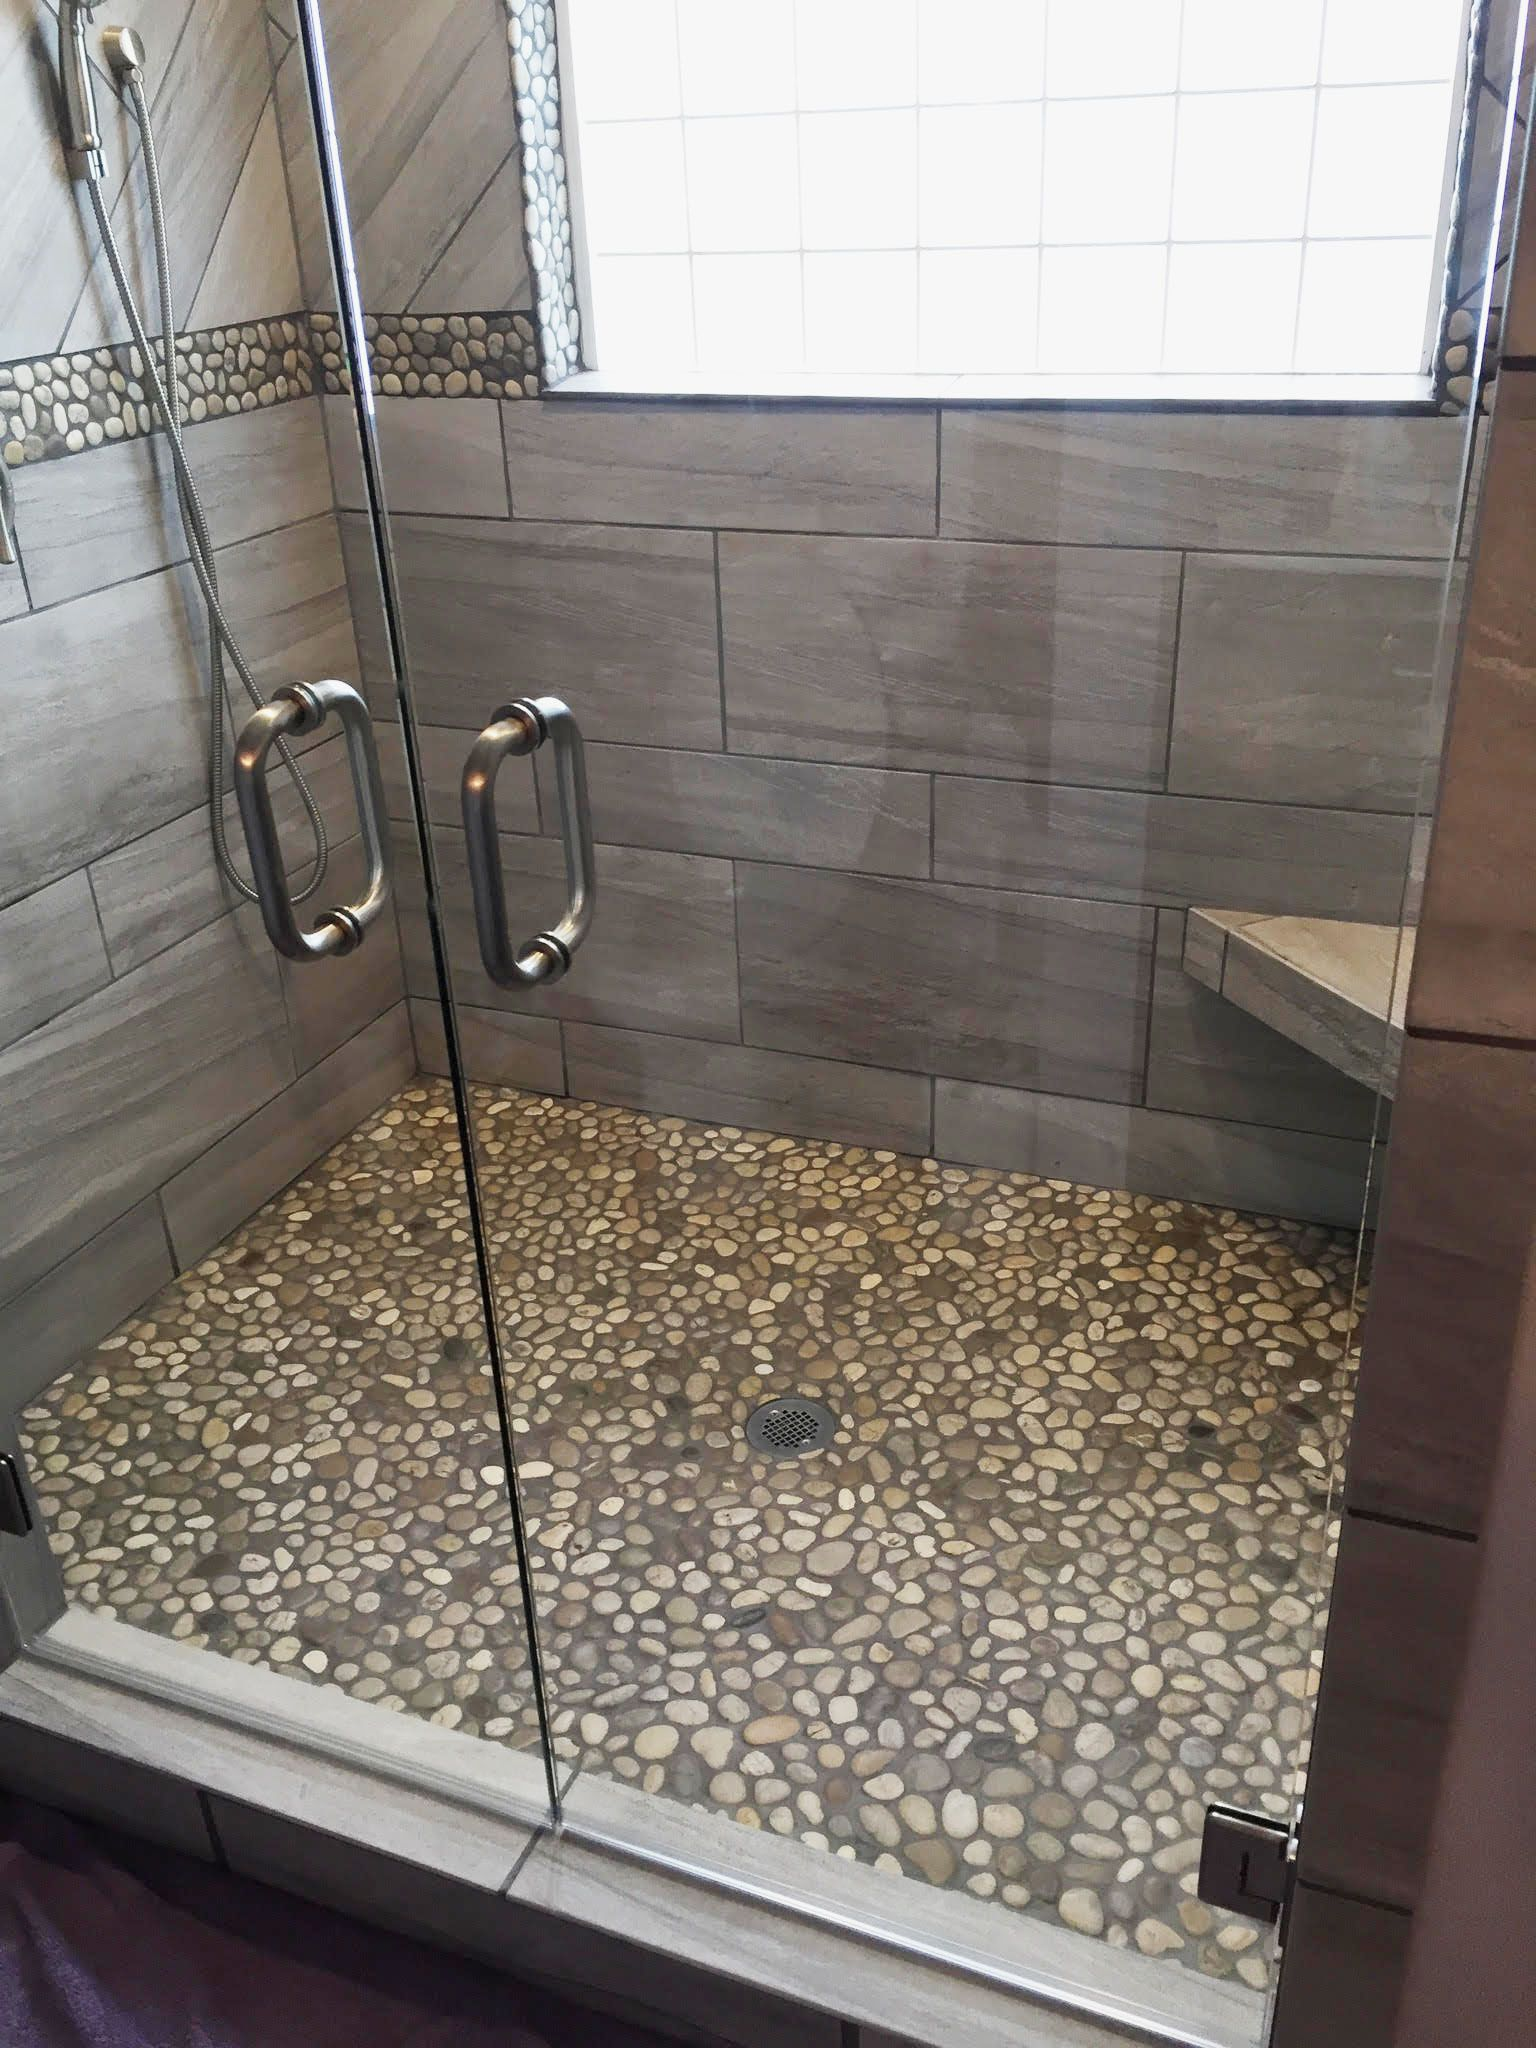 Shower Floor Tiles Which Why And How: Bali Cloud Pebble Tile Shower Floor And Border With Dark